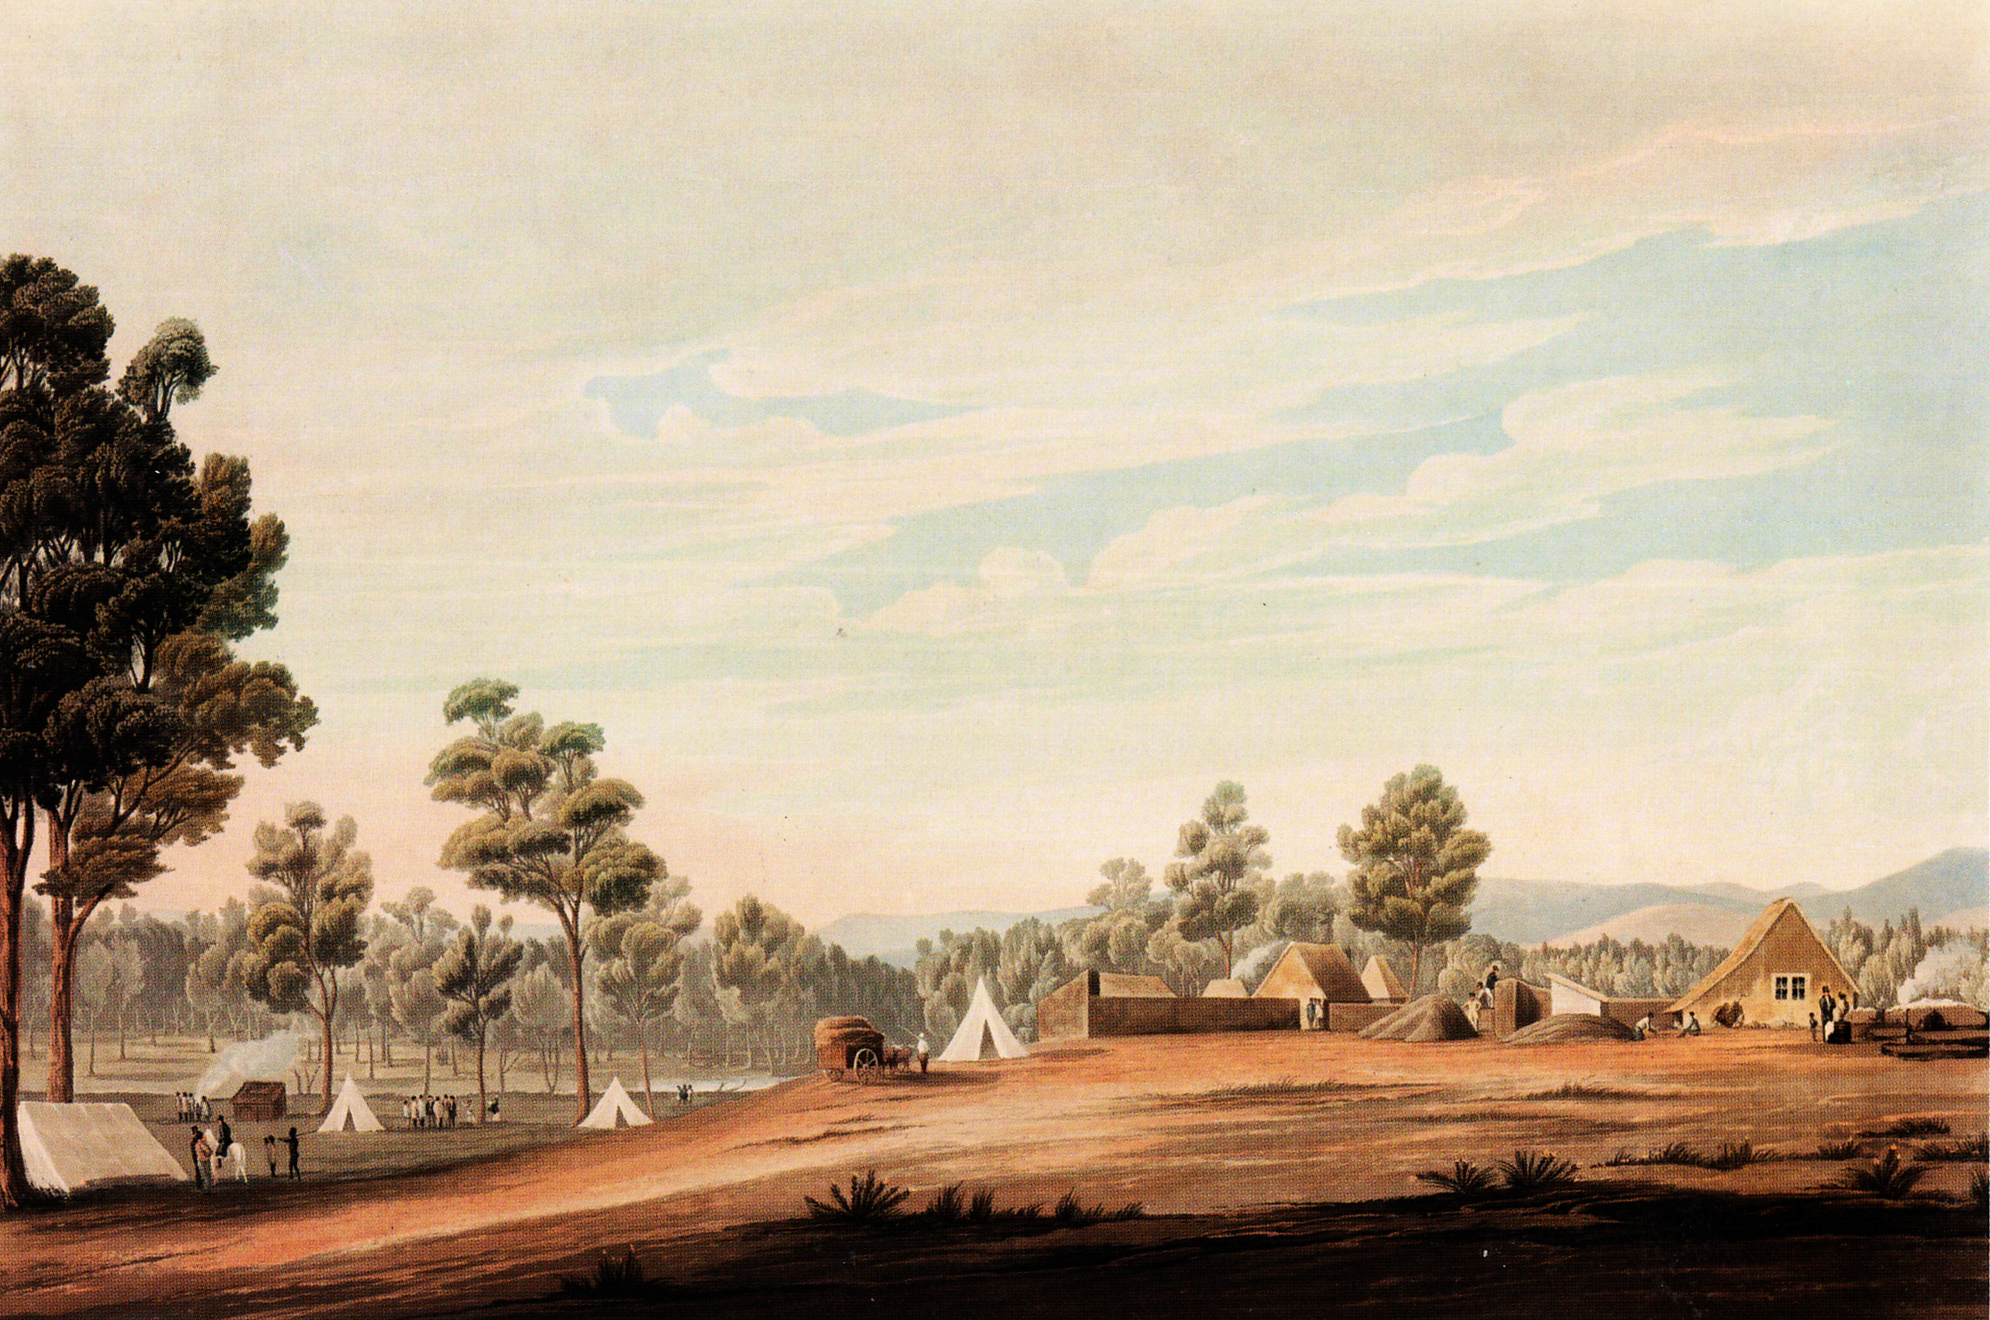 Robert Havell, engraver, Britain, 1793-1878, A view of the country and the temporary erections near the site for the proposed town of Adelaide in South Australia, 1837/38, published by Smith, Elder & Co., London, aquatint, hand-coloured with watercolour on paper, 36.8 x 54.5 cm (image); South Australian Government Grant 1973. Art Gallery of South Australia, Adelaide.